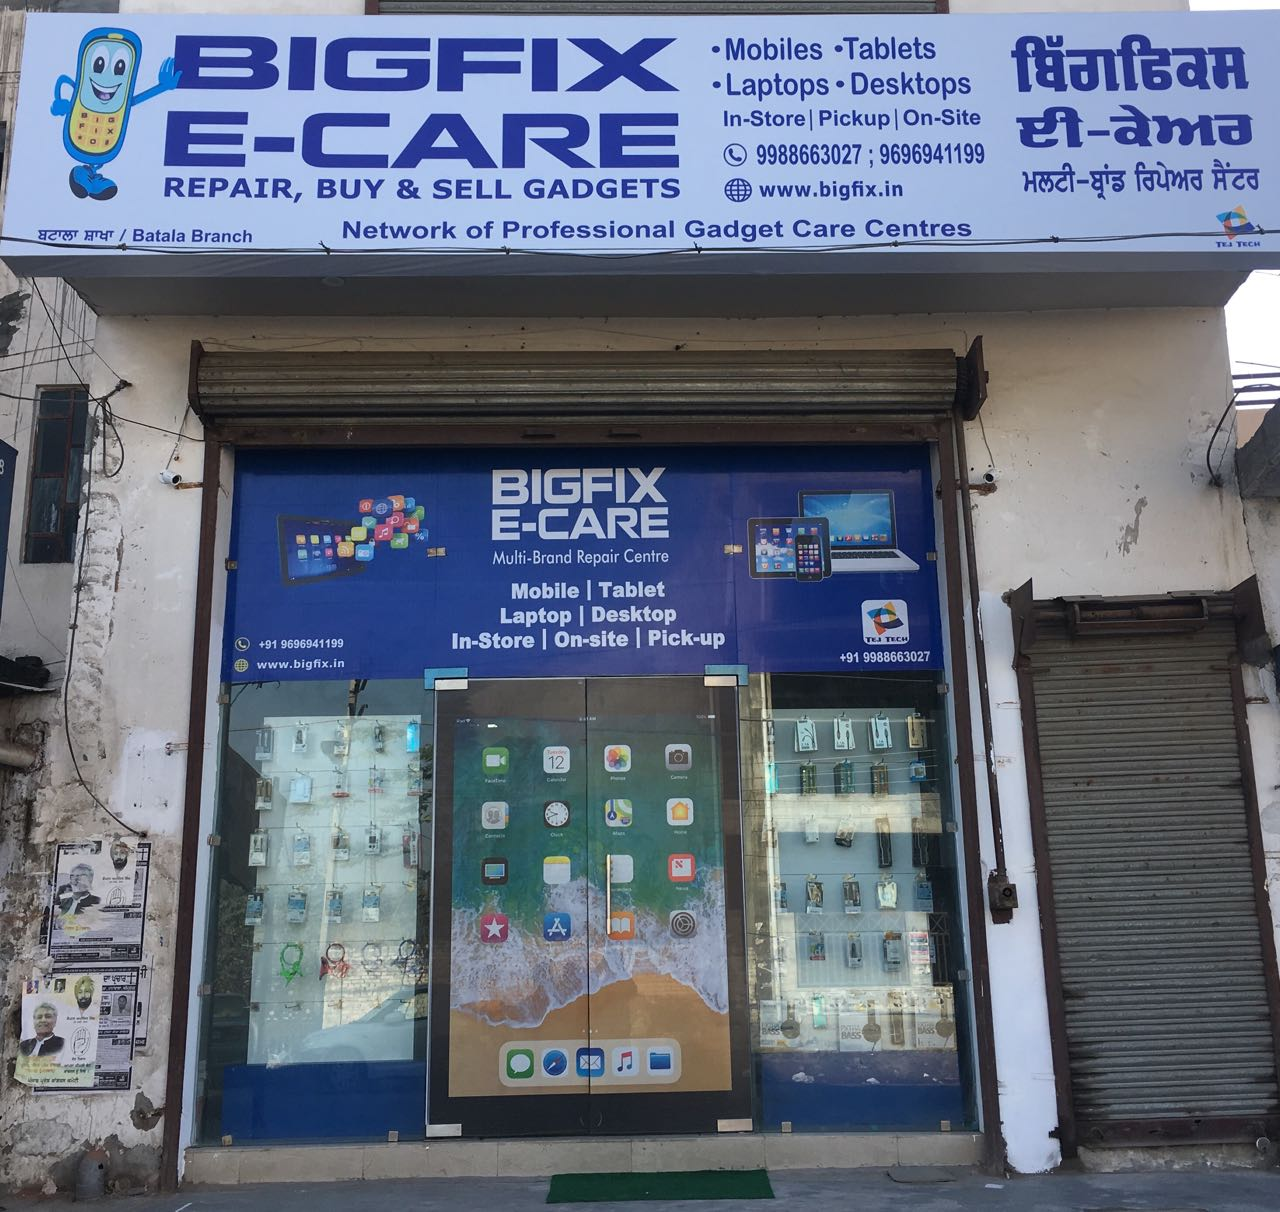 Bigfix Ecare - service center franchise opportunities